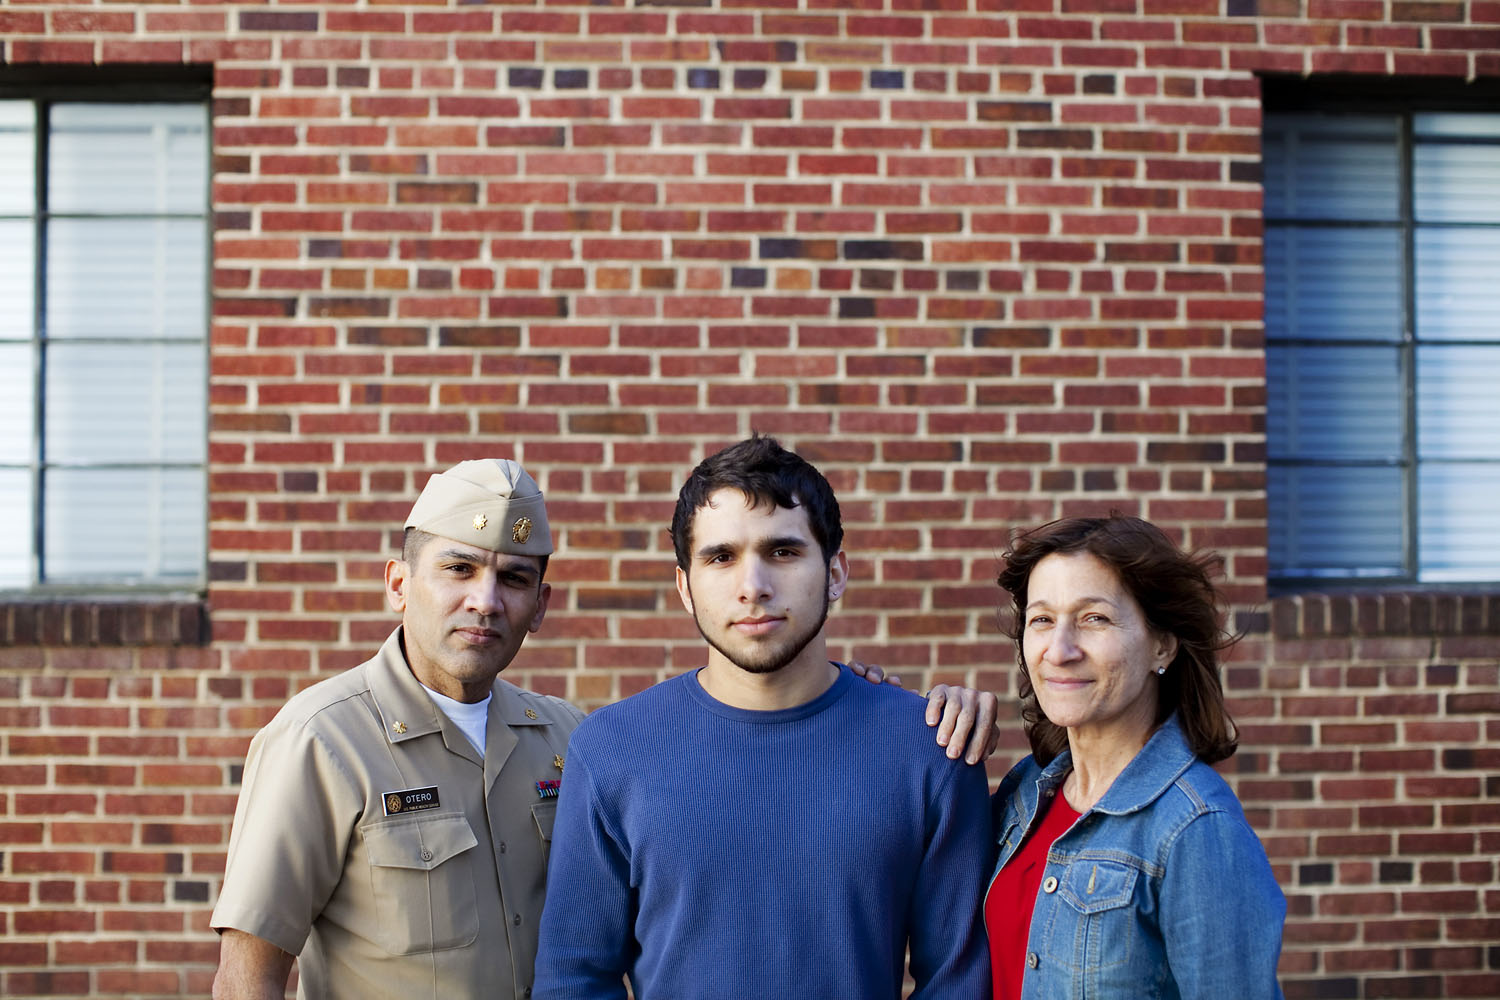 Jose Otero of Bethesda, MD with parents Jose and Elba both born in Puerto Rico.